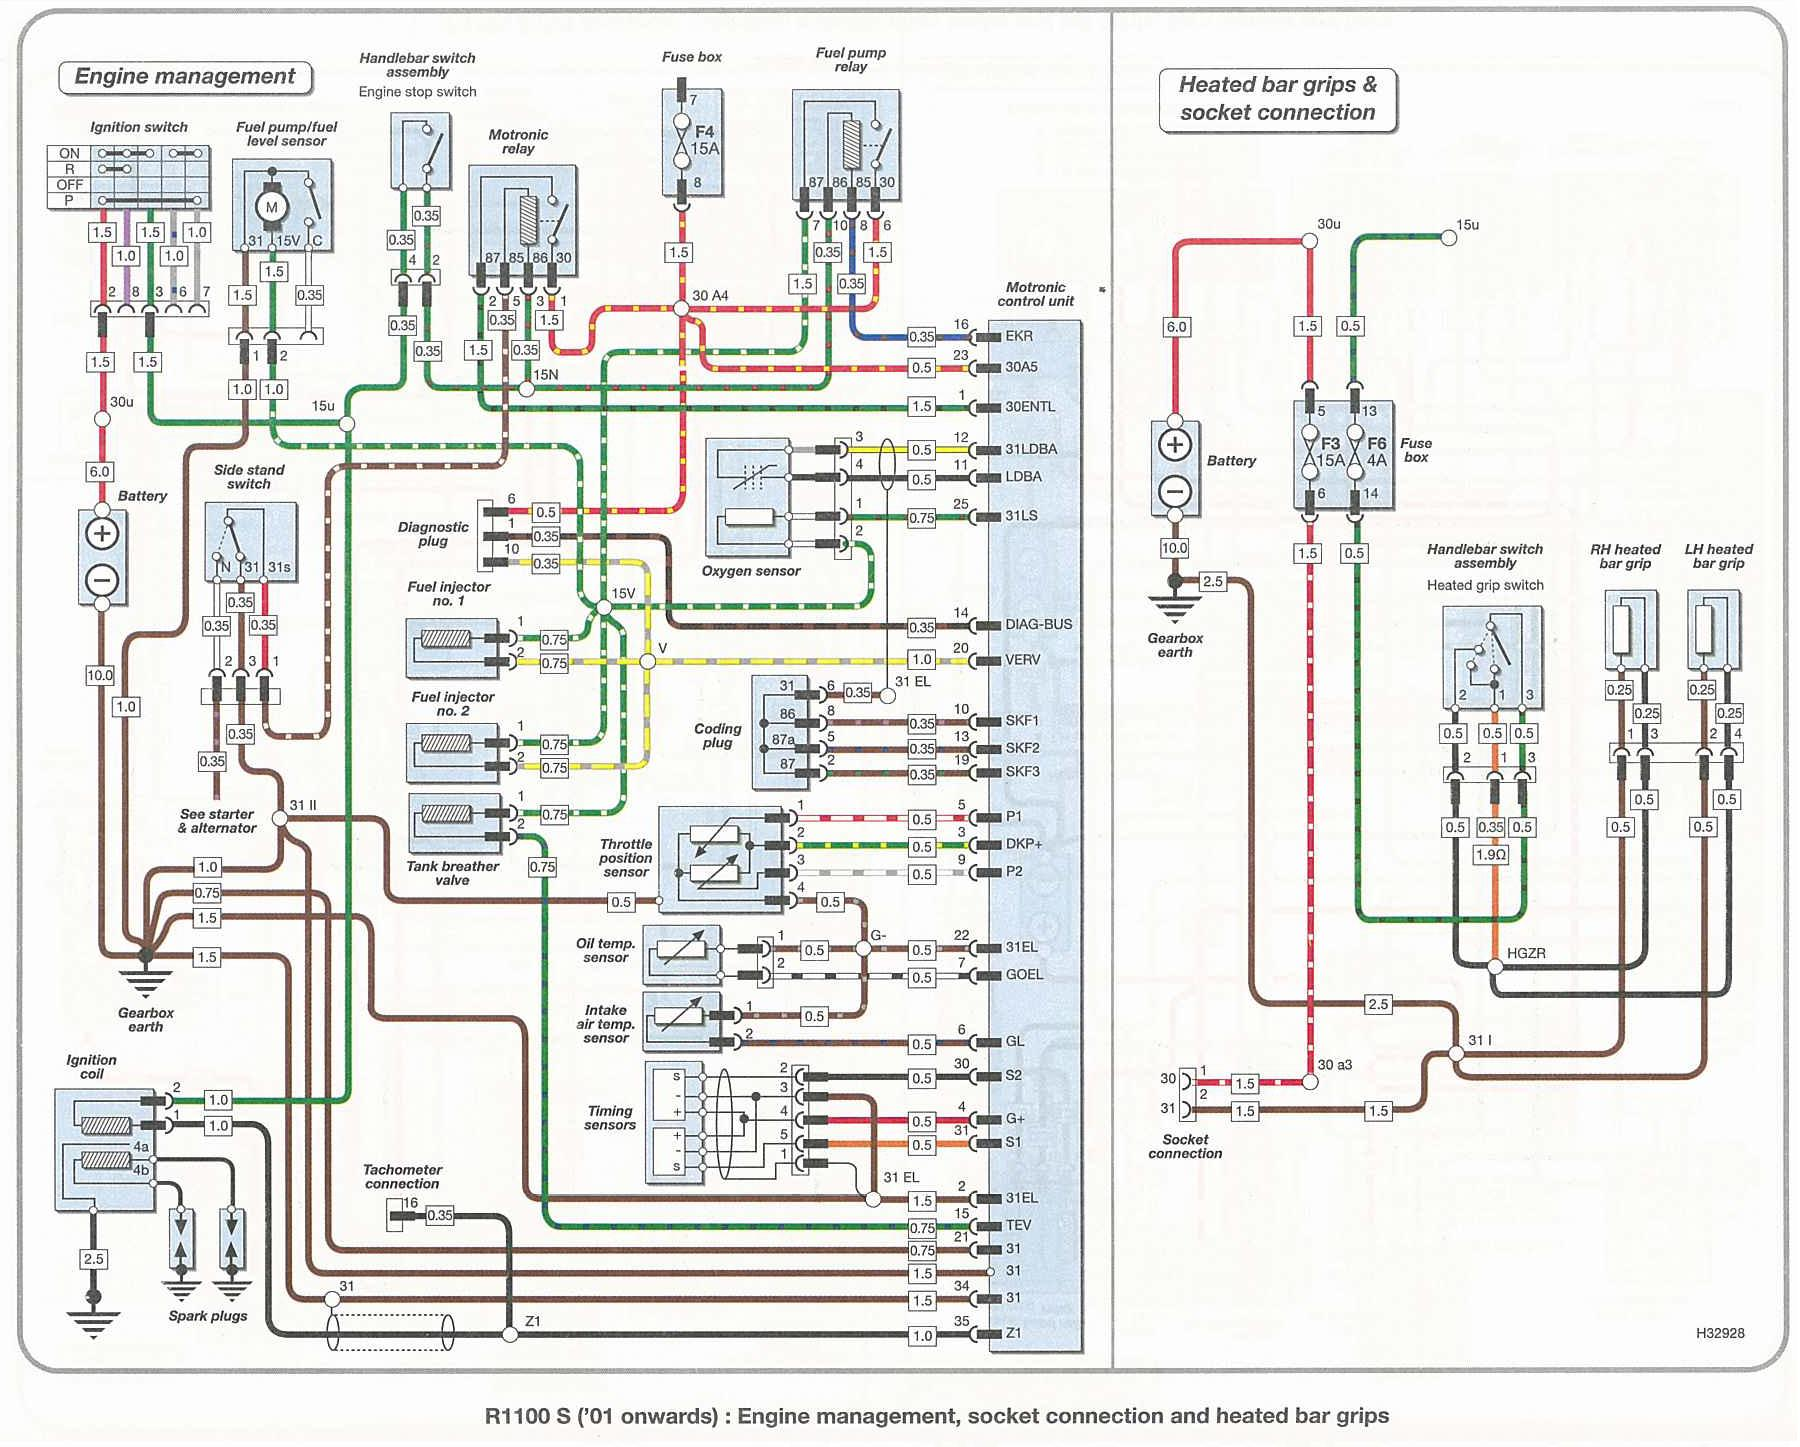 Bmw S1000rr Fuse Box Diagram Schematic Diagrams R1200c 2010 Wiring Location